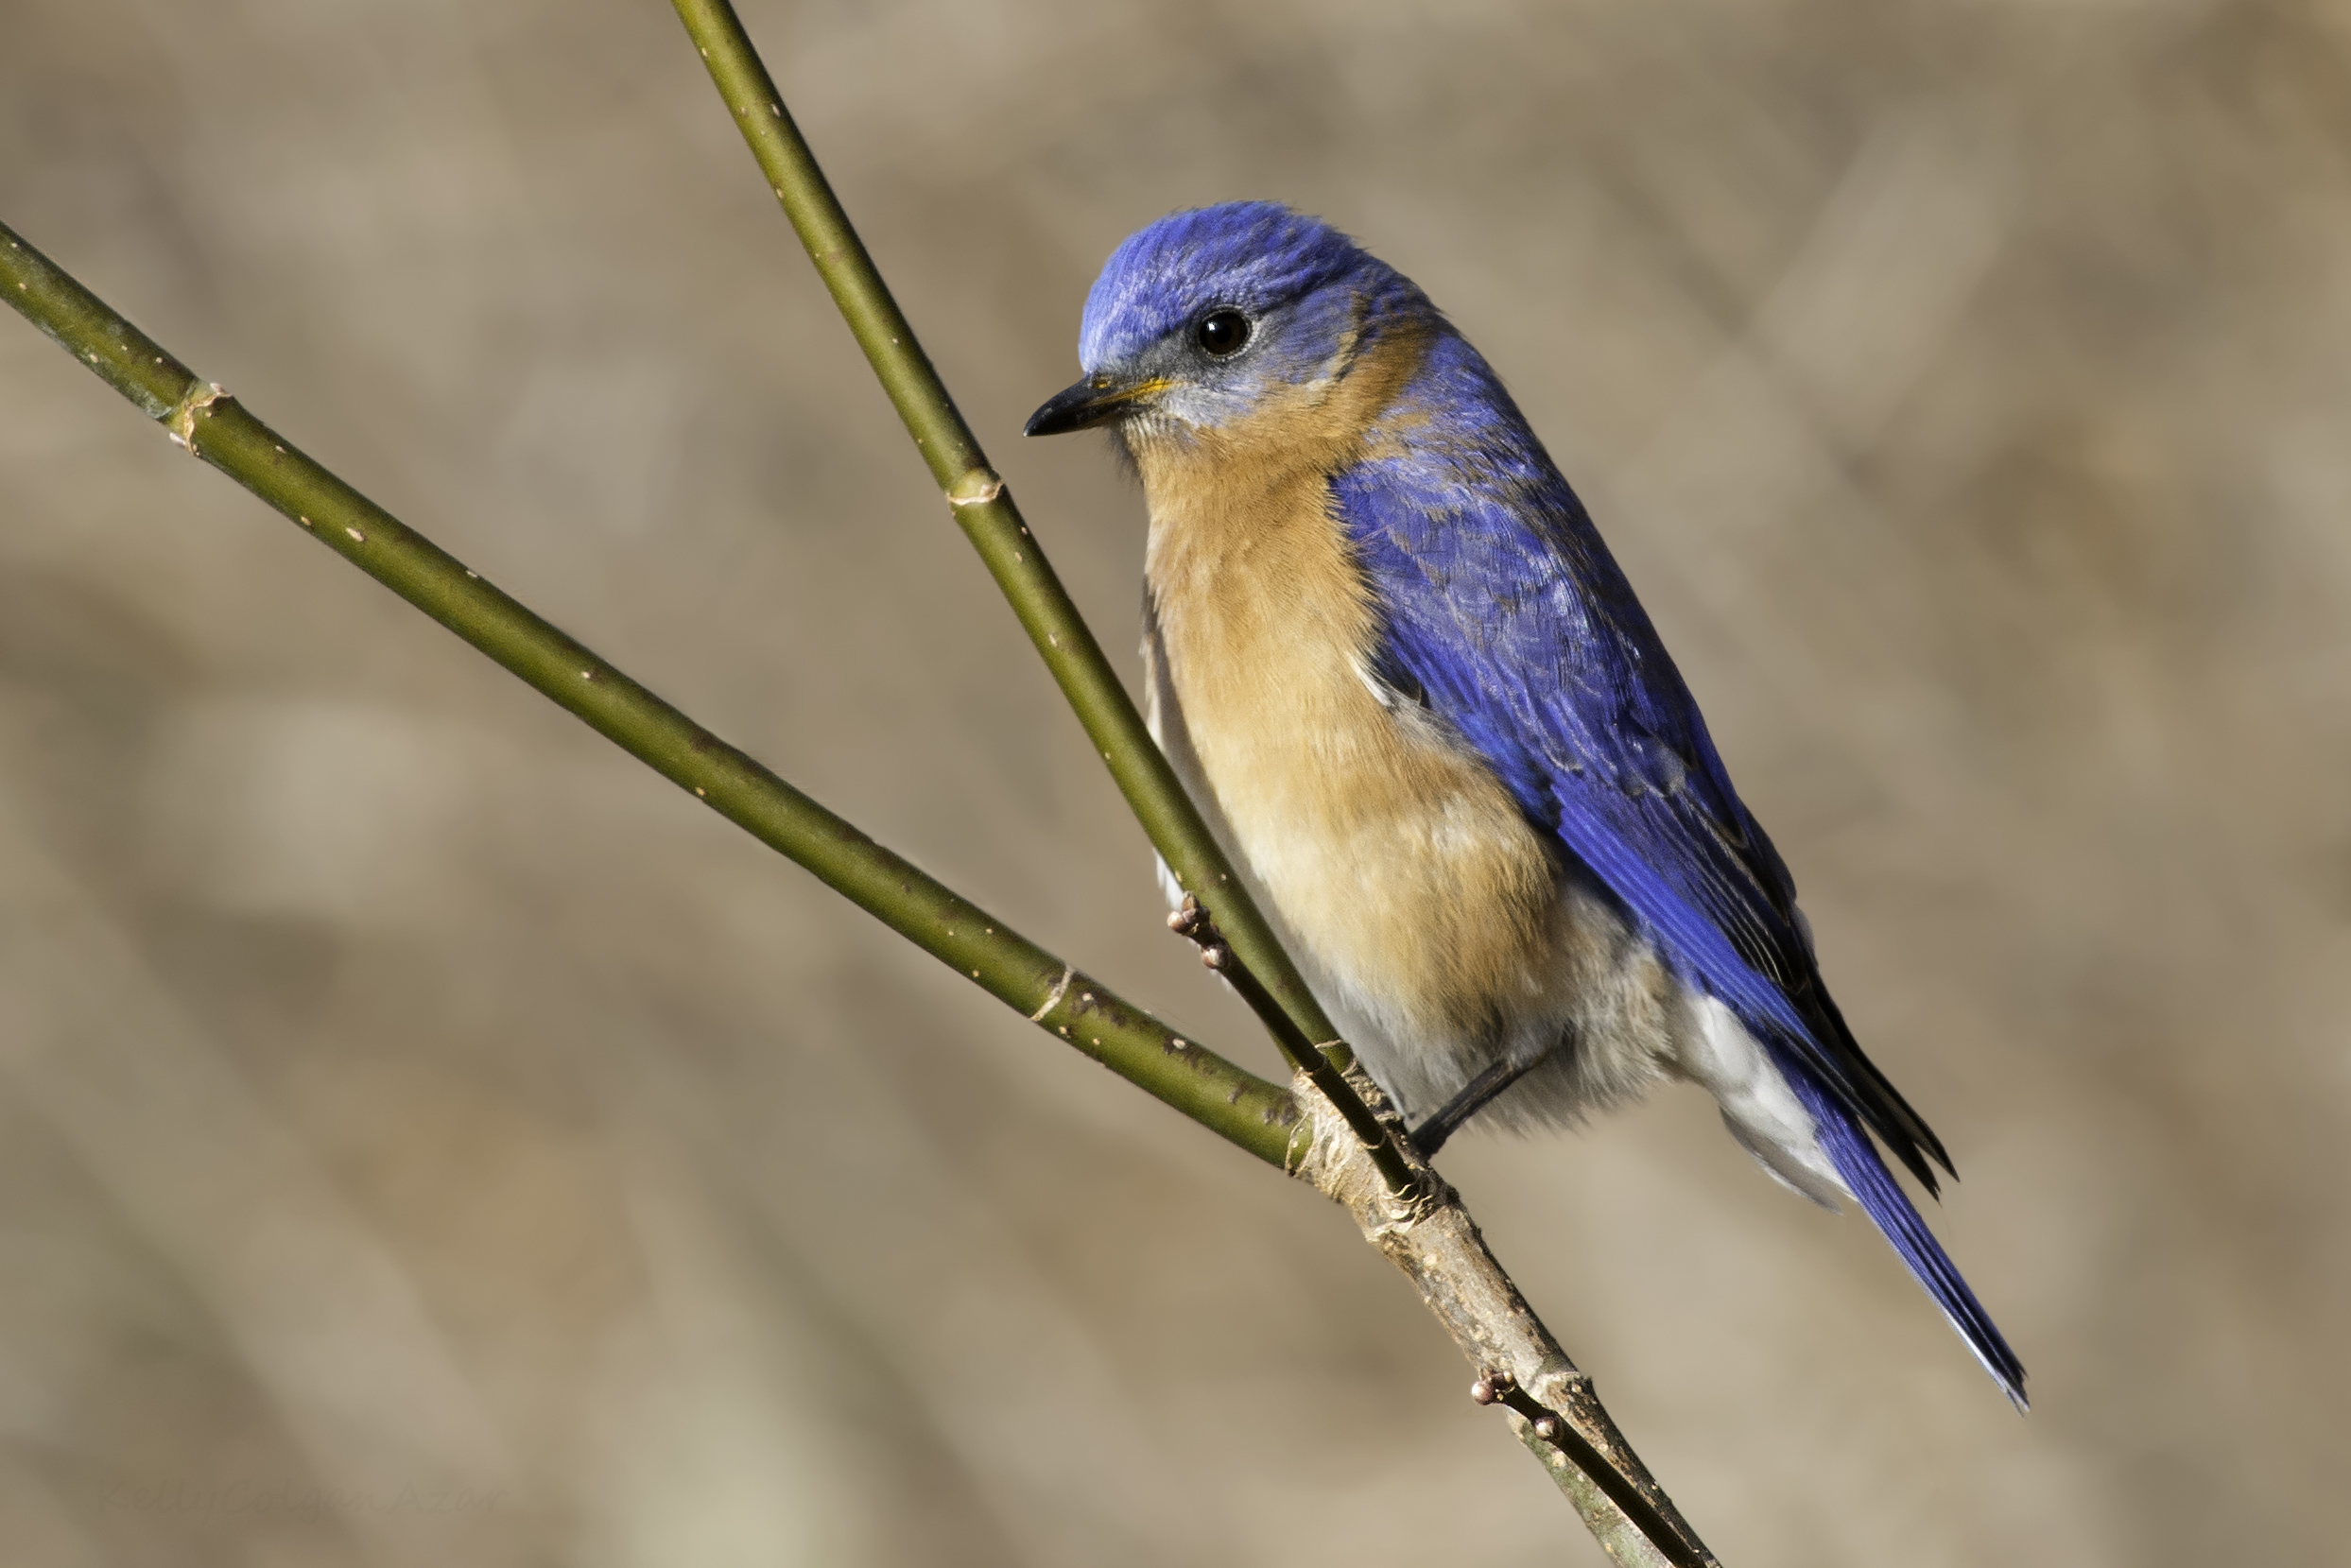 """- Eastern Bluebird (Sialia sialis)Eastern Bluebirds live in open areas, forest edges, and in nesting boxes. Their diet consists of insects such as grasshoppers and beetles, arachnids, other invertebrates, and berries. They weigh about 1 oz. and have a wingspan of 9.8-12.6 in. Eastern Bluebirds have a low call that says """"tu-a-wee."""" They are protected on the US Migratory Bird list.Photo Credits: Kelly Colgan Azar"""